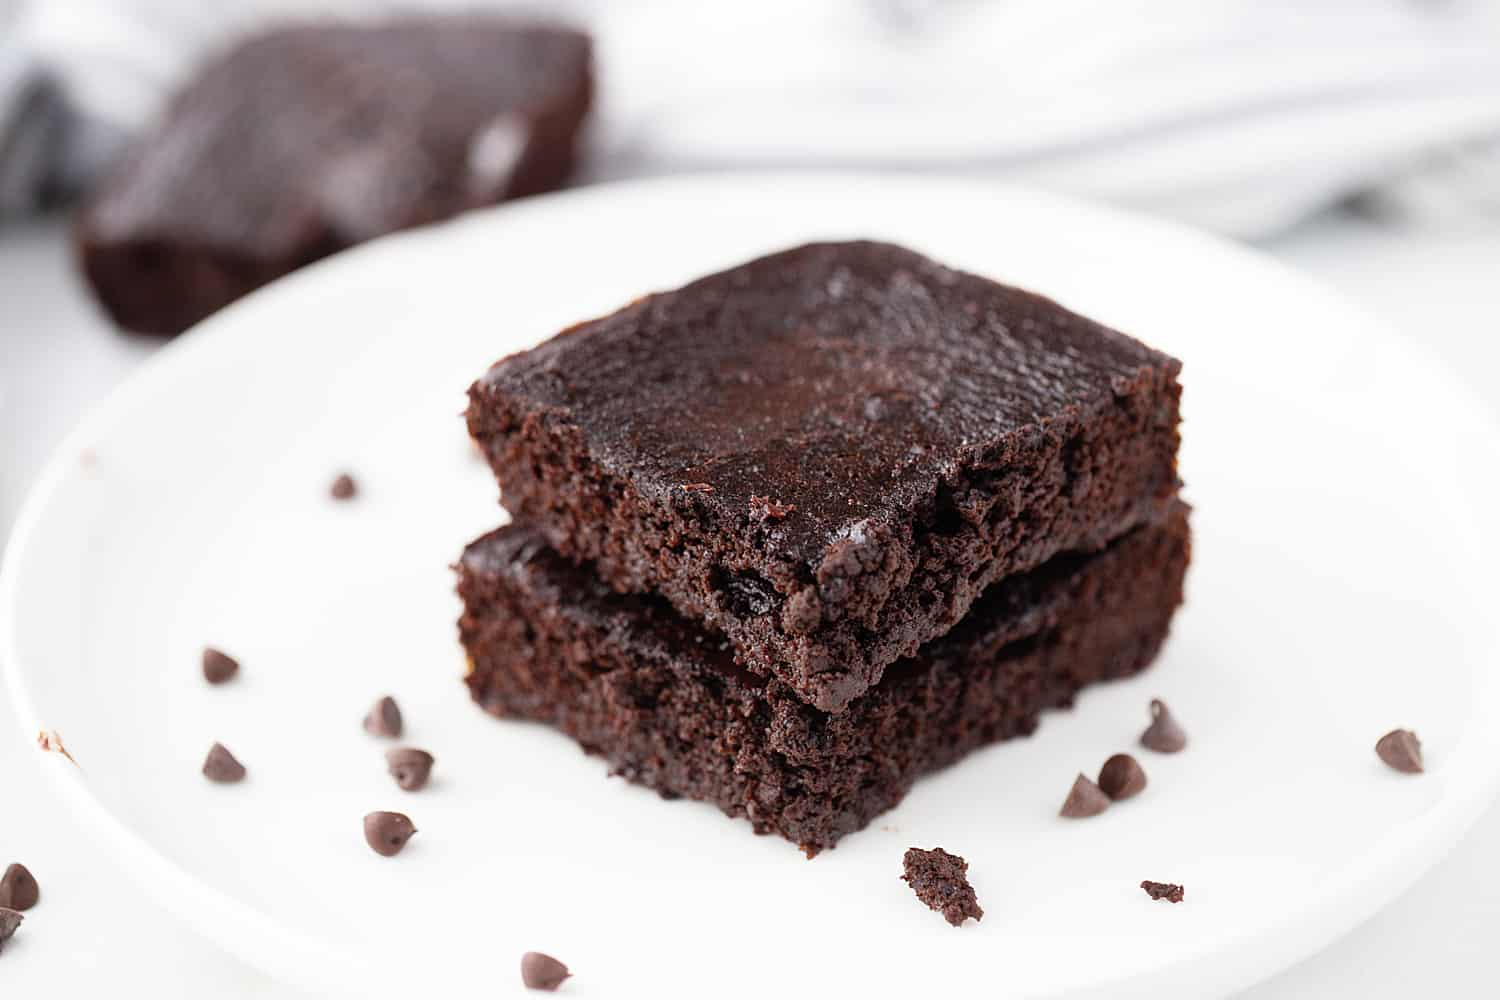 Gluten-Free Brownies: These fudgy, flourless gluten-free brownies are so rich and chocolaty, it's hard to believe they're less than 150 calories a serving! #brownies #glutenfree #flourless #flourlessbrownies #glutenfreebrownies #glutenfreedessert #baking #healthyrecipe #chocolate #halfscratched